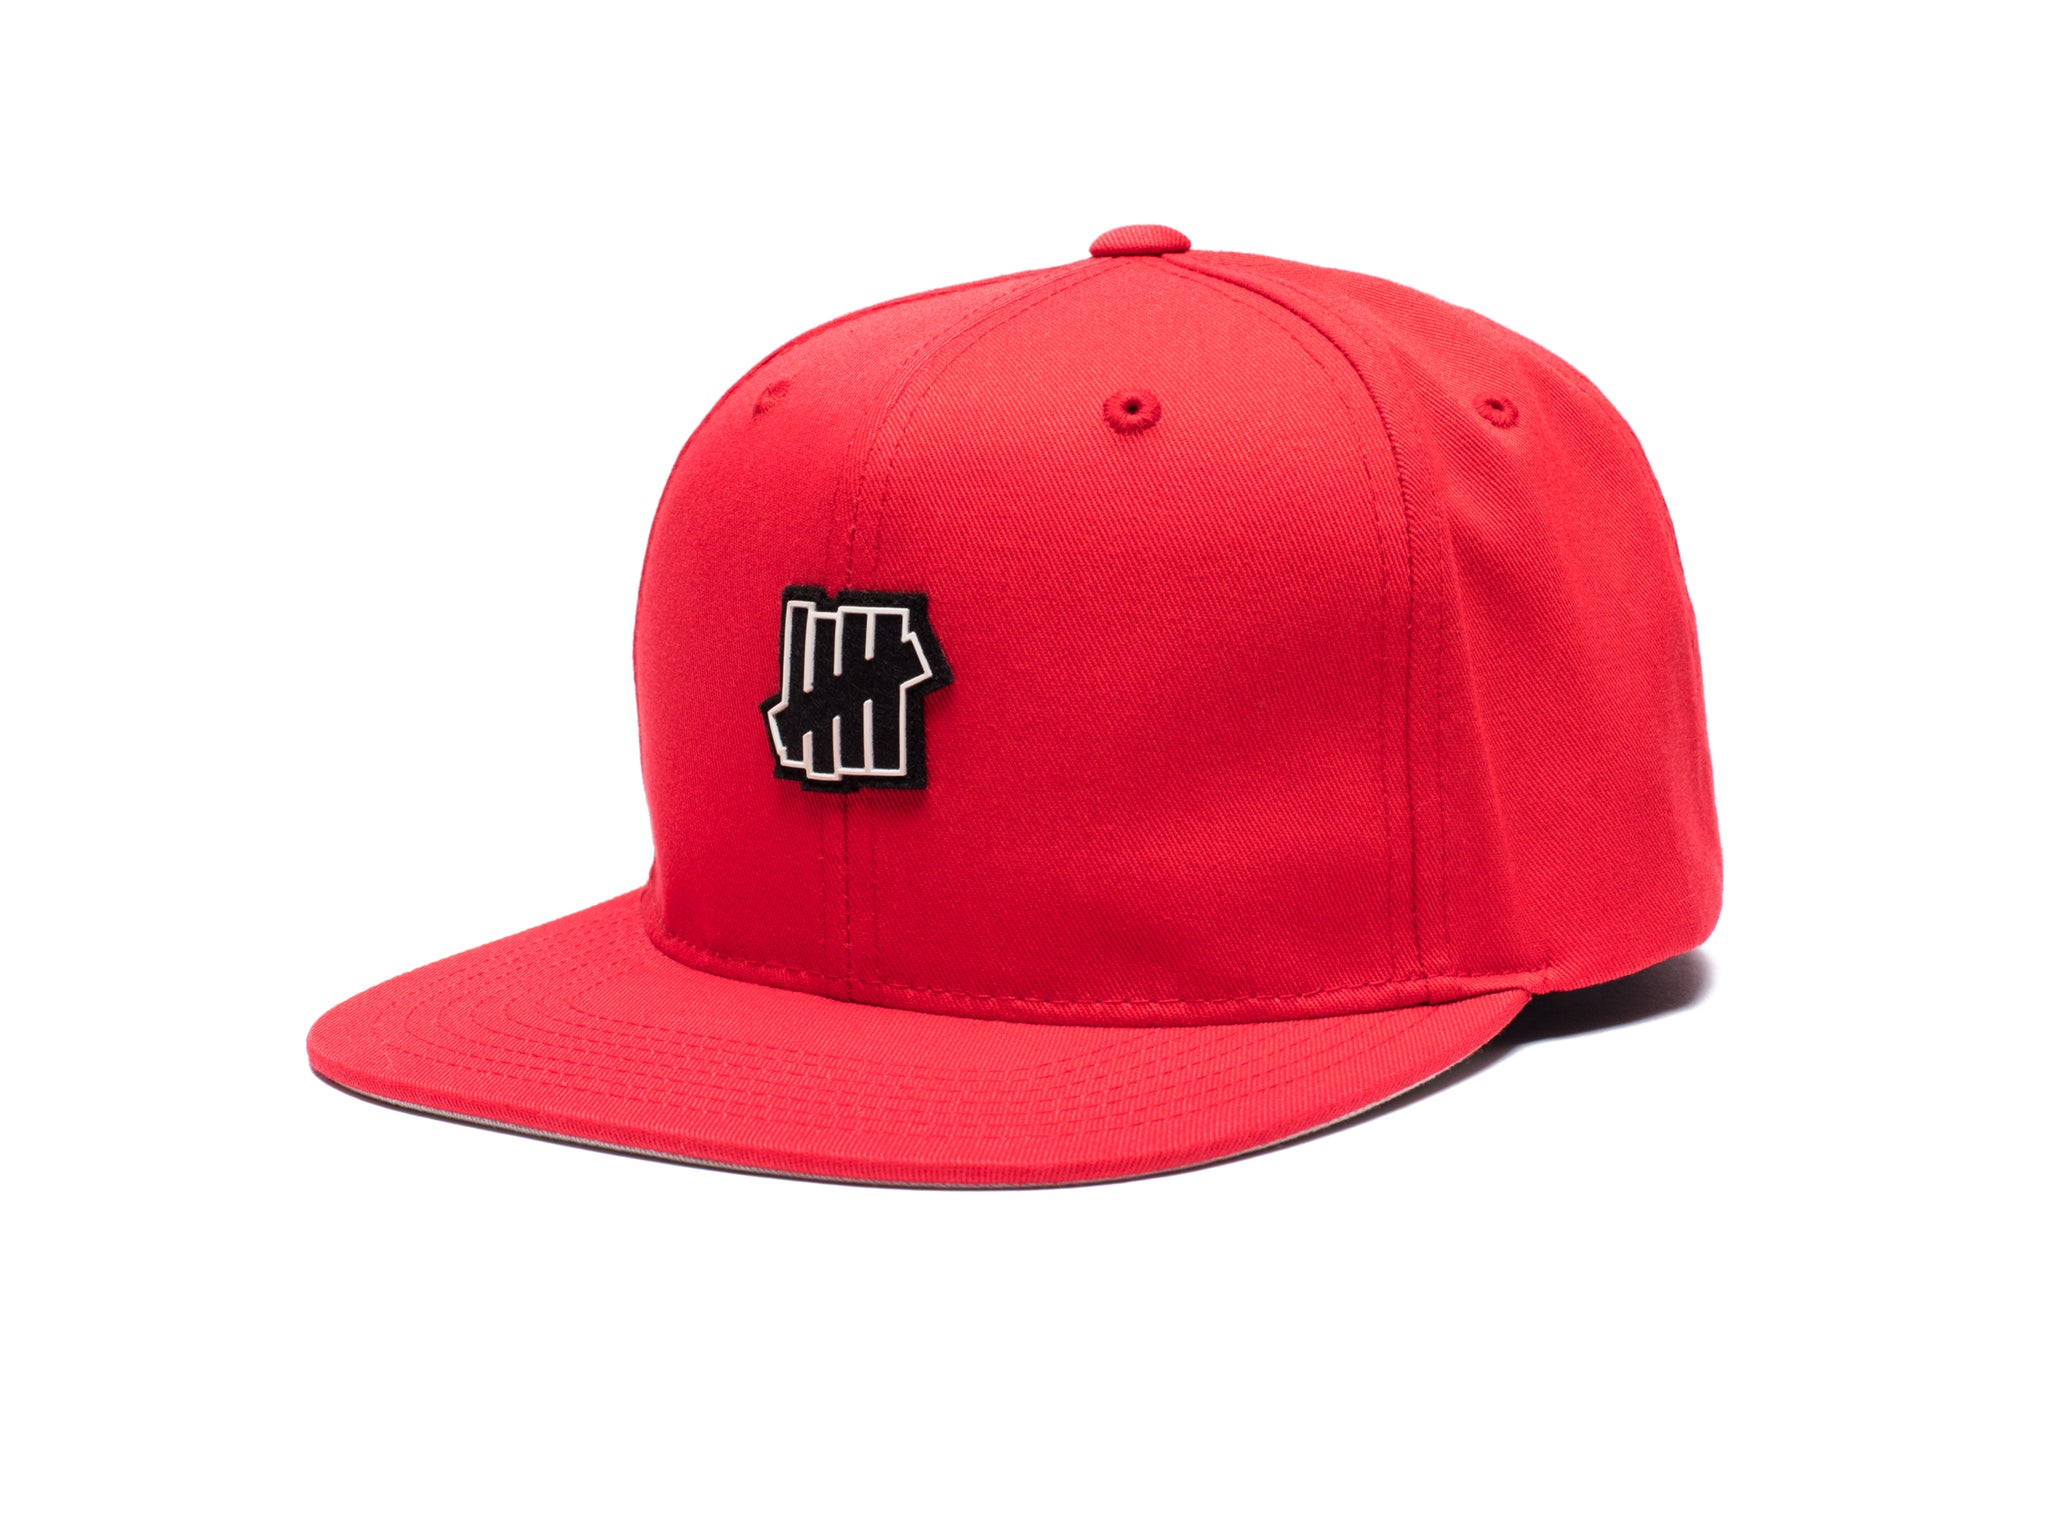 UNDEFEATED RUBBER ICON STRAPBACK